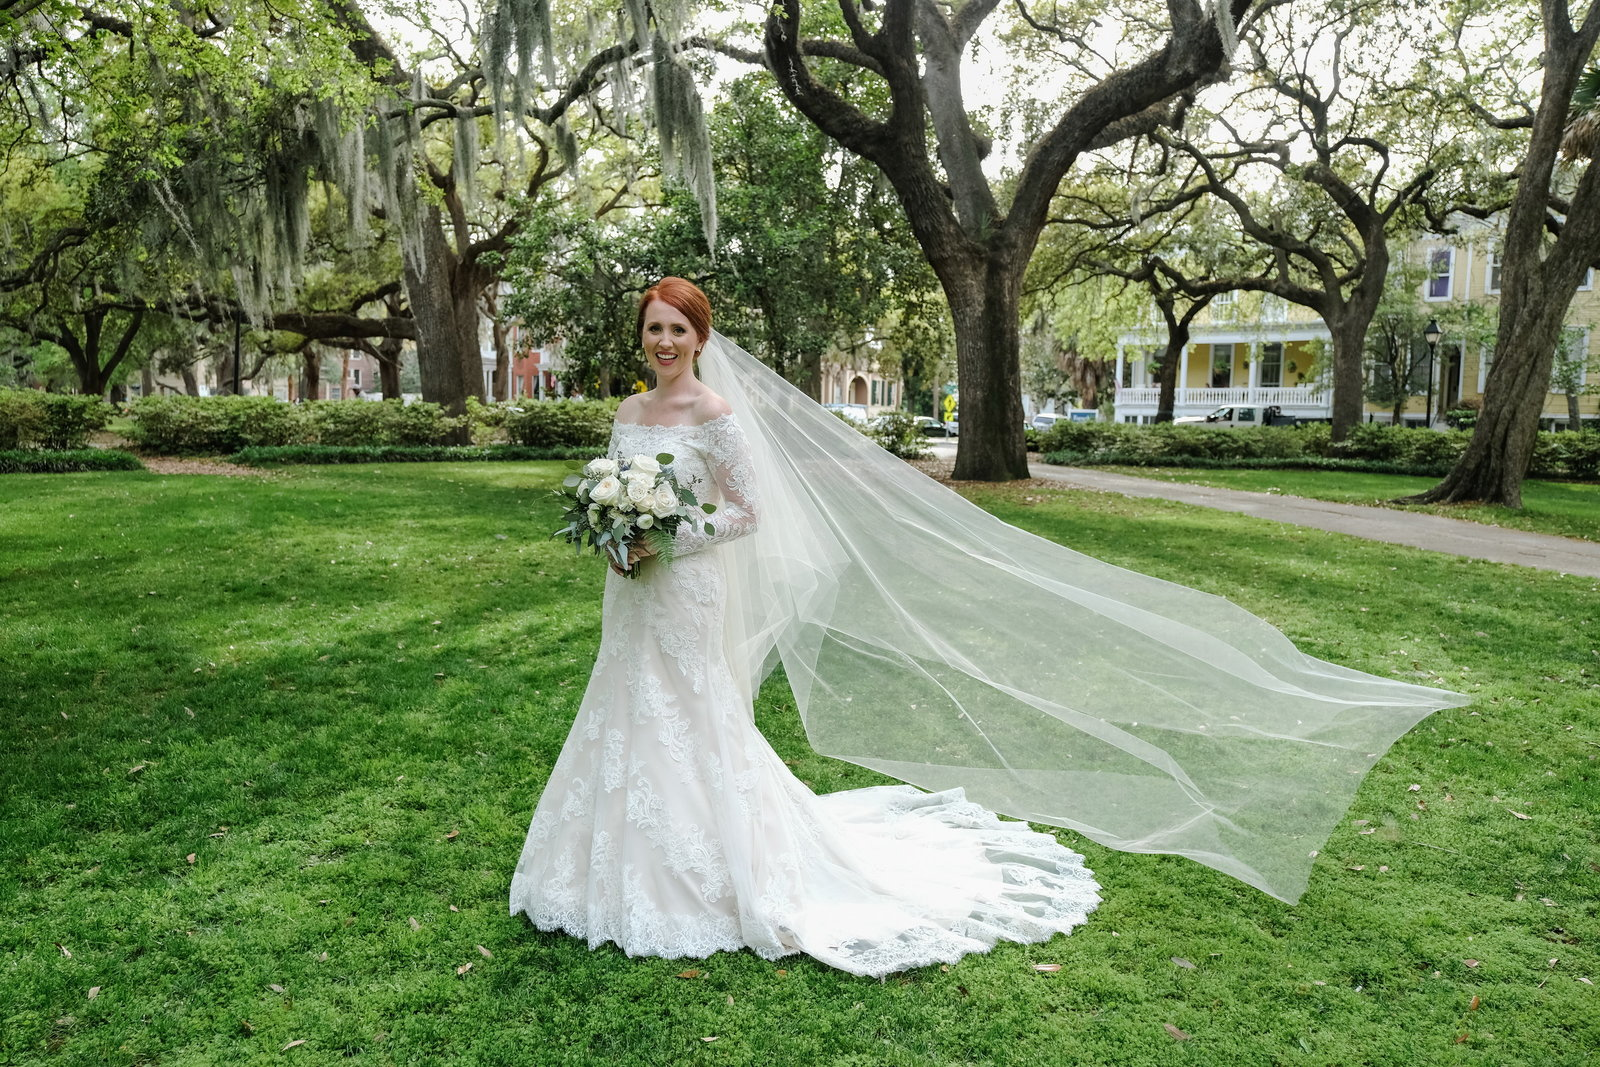 Savannah Wedding Photography, Bobbi Brinkman Photography, Thomas & Kathleen